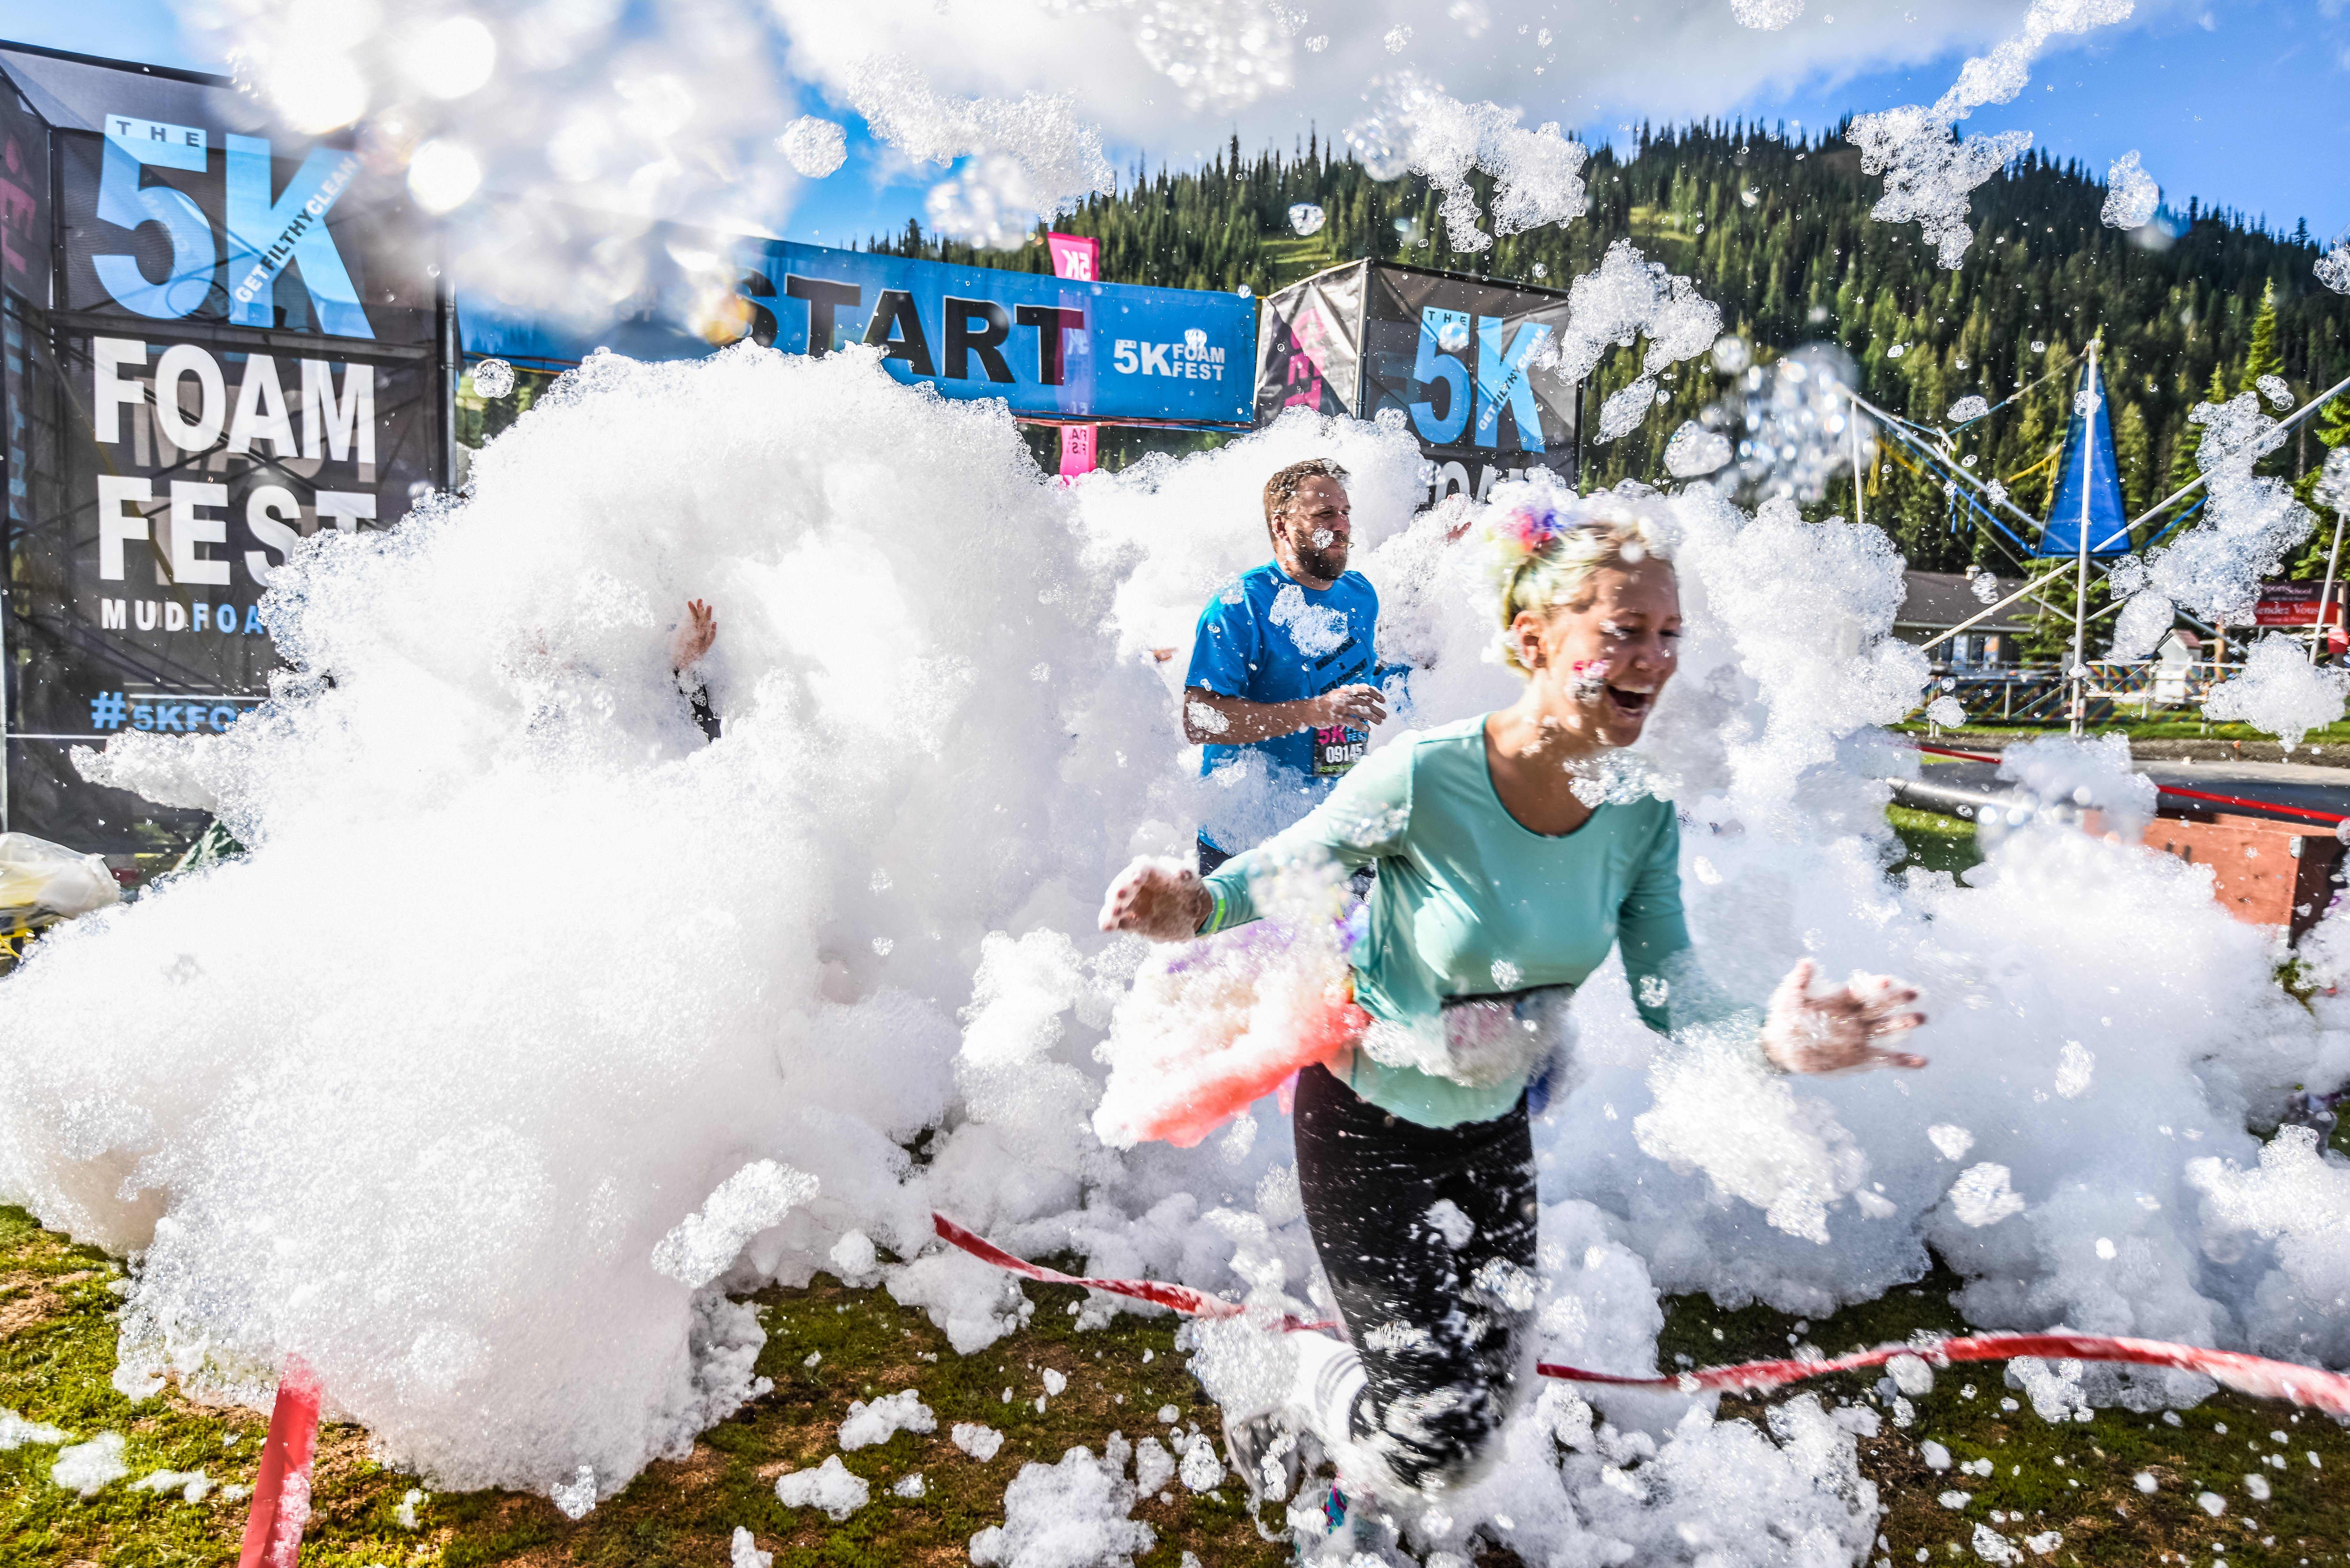 The 5K Foam Fest - Perth - Mount Gambier Accommodation